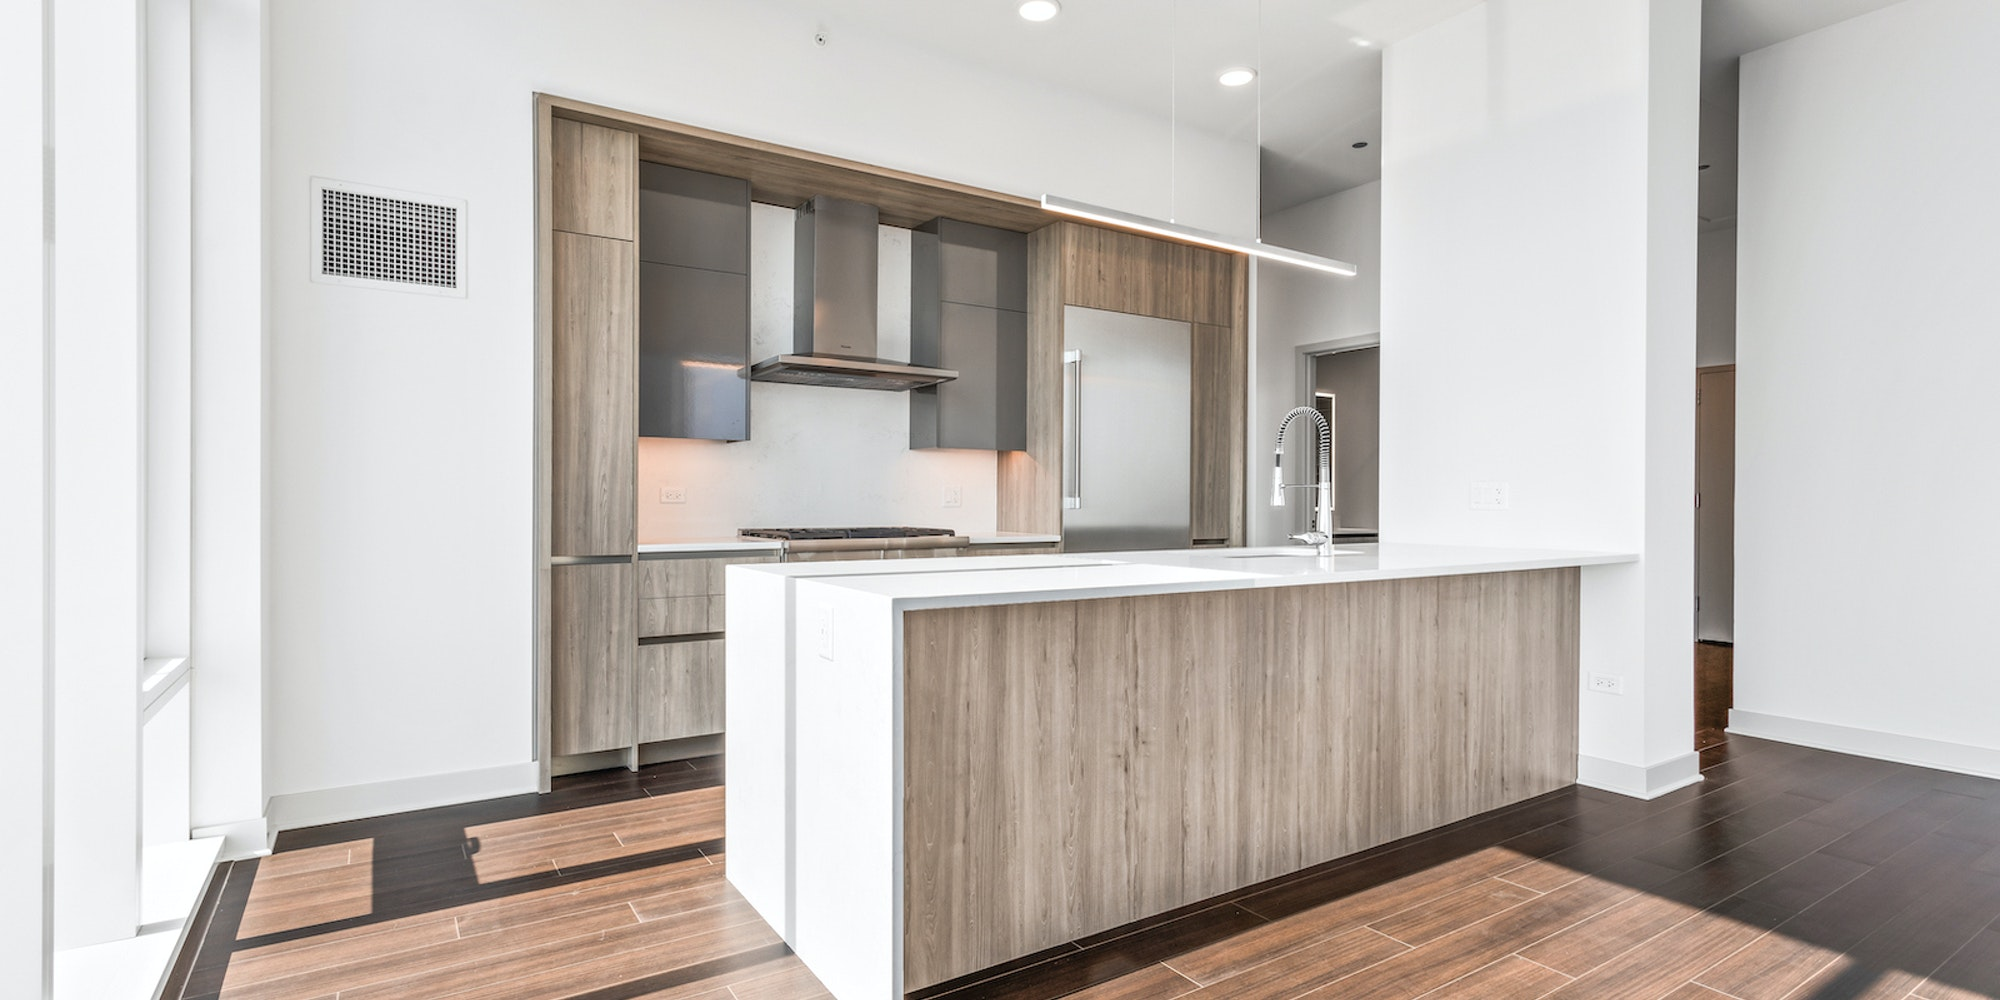 Wolf Point East 5801 PH 4